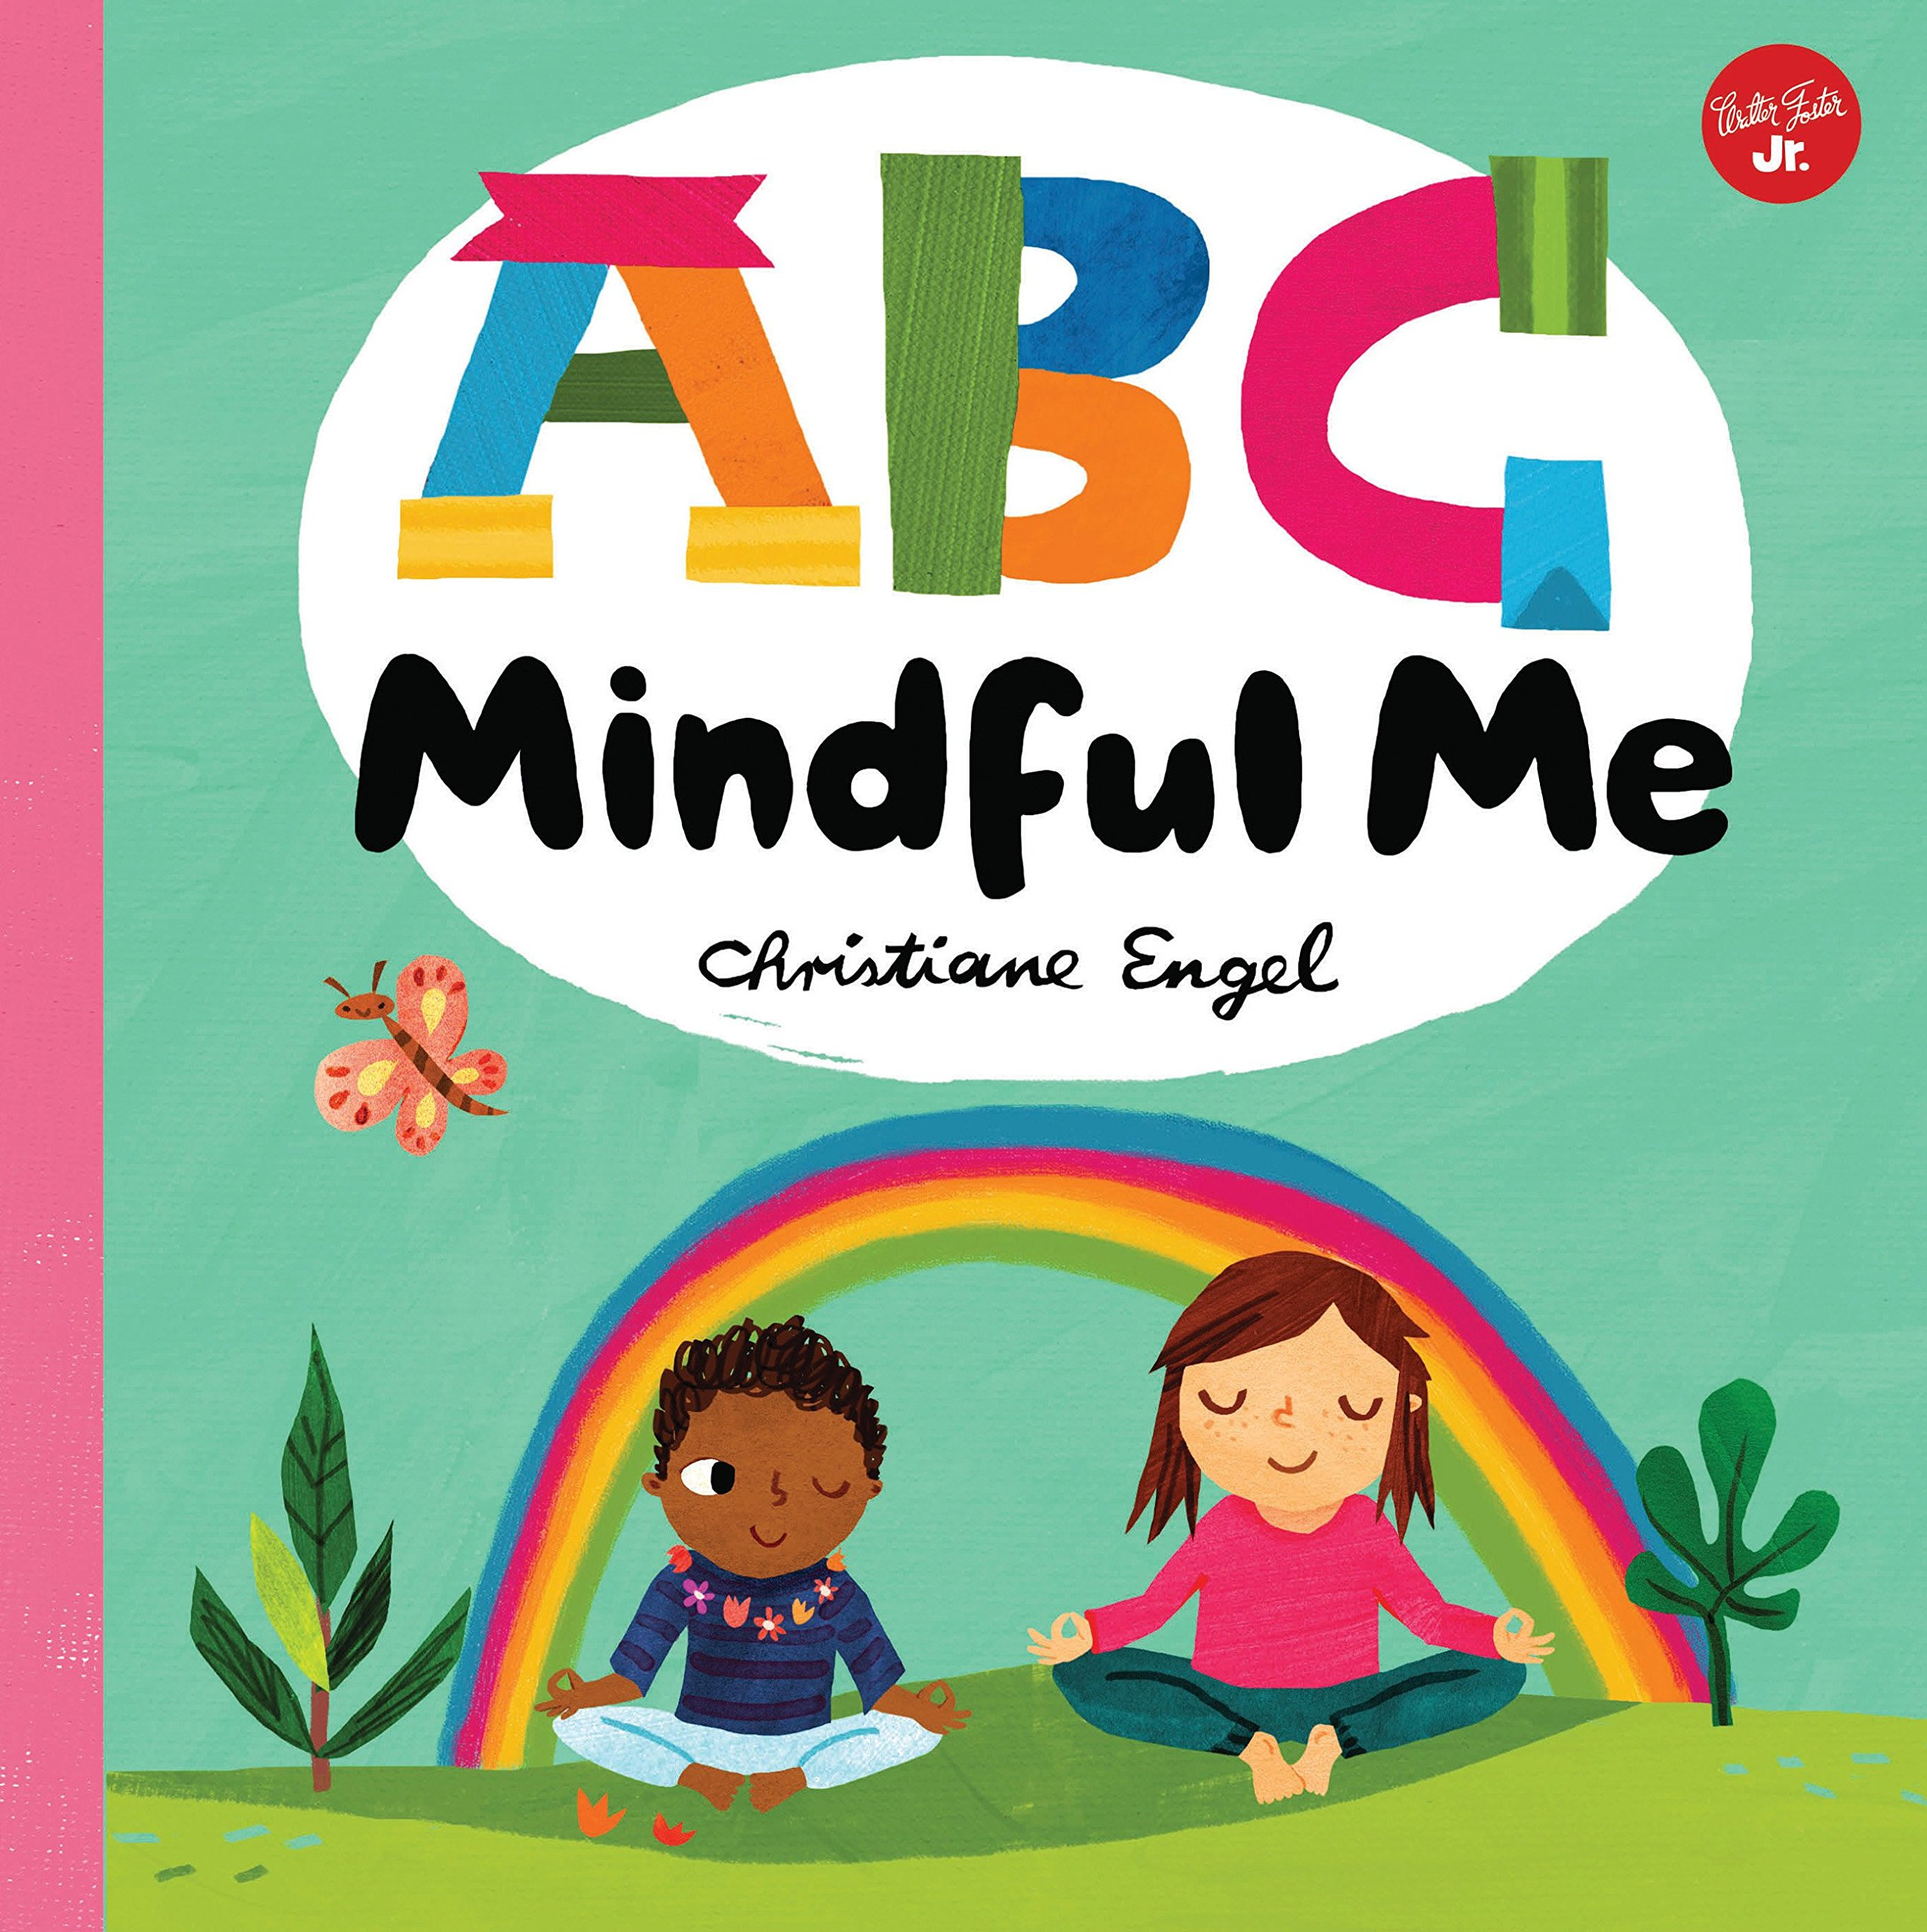 ABC for Me: ABC Mindful Me: ABCs for a happy, healthy mind ...